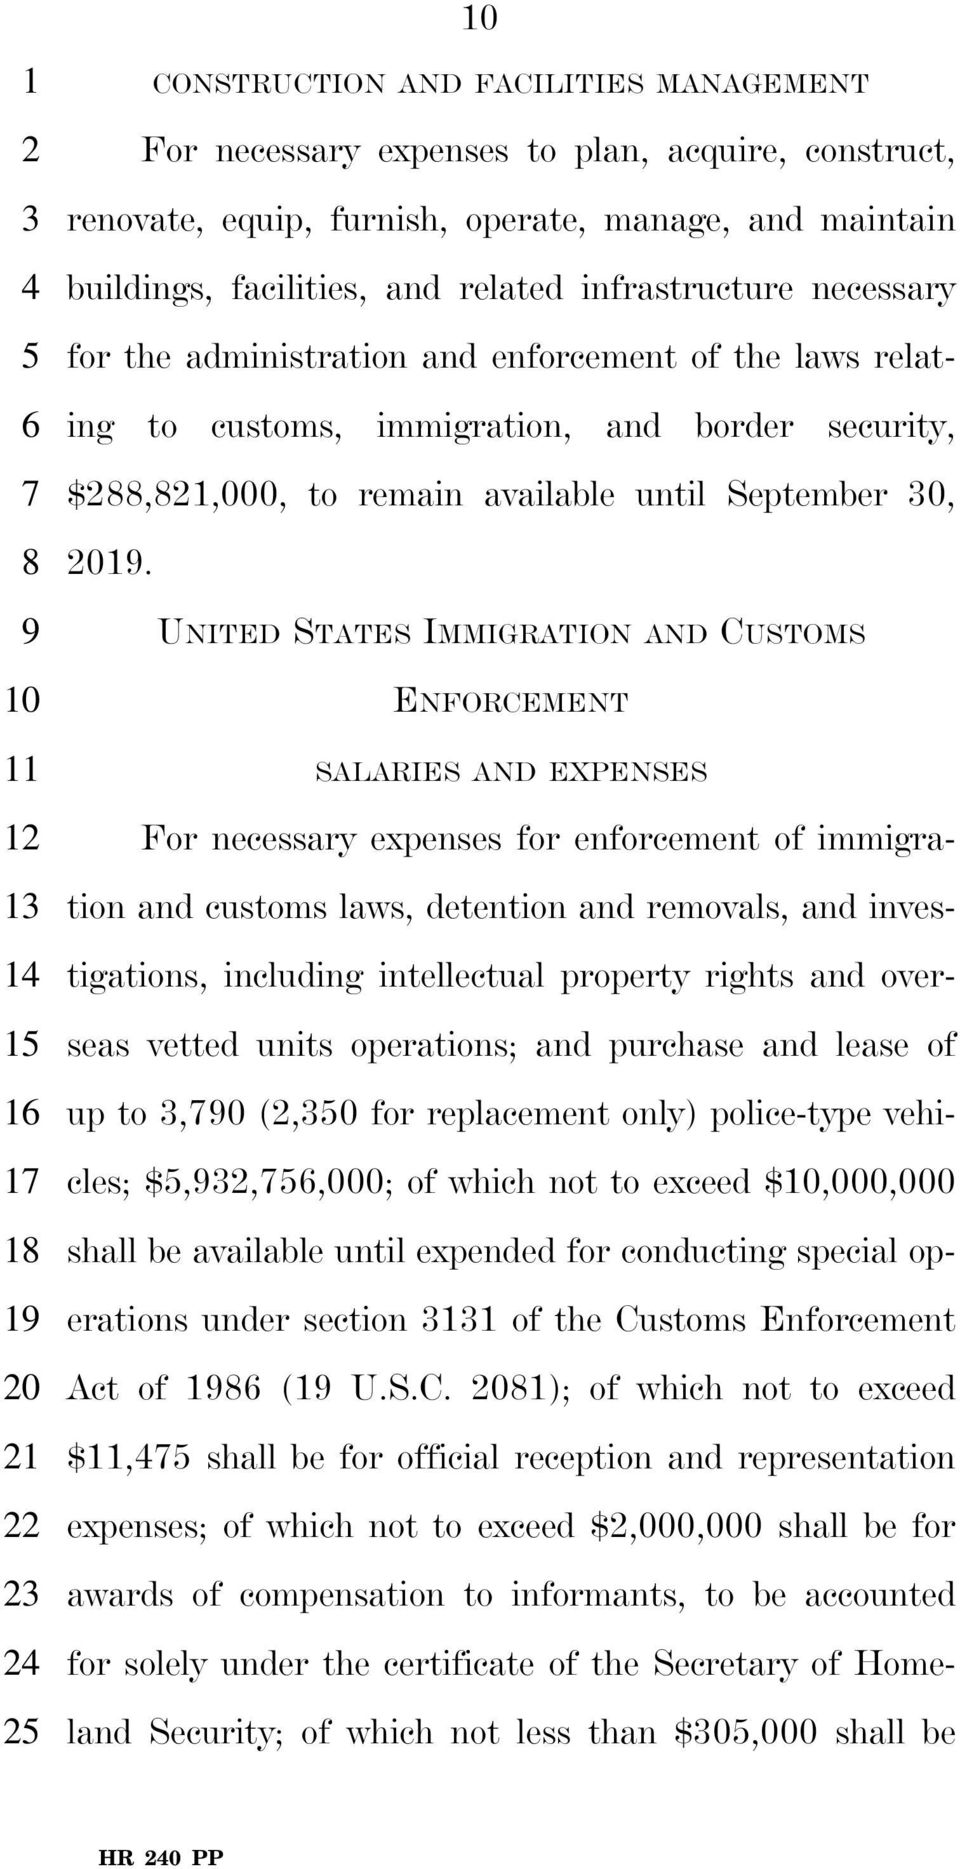 infrastructure necessary for the administration and enforcement of the laws relating to customs, immigration, and border security, $288,821,000, to remain available until September 30, 2019.